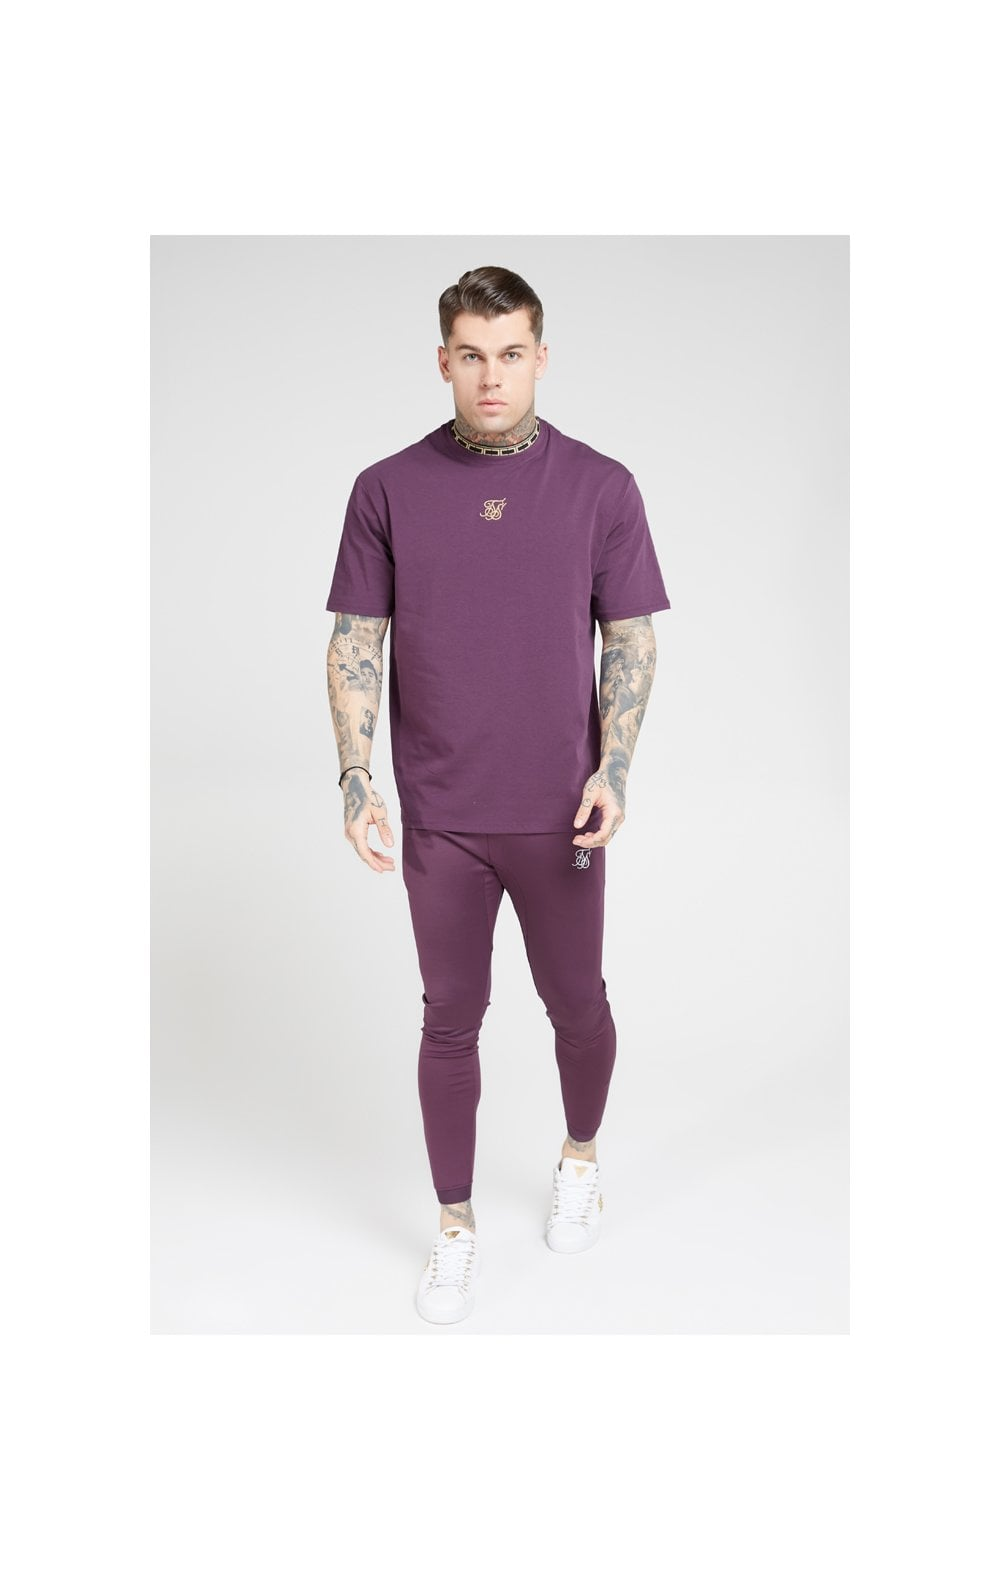 Load image into Gallery viewer, SikSilk Tape Collar Essential Tee - Burgundy & Gold (2)